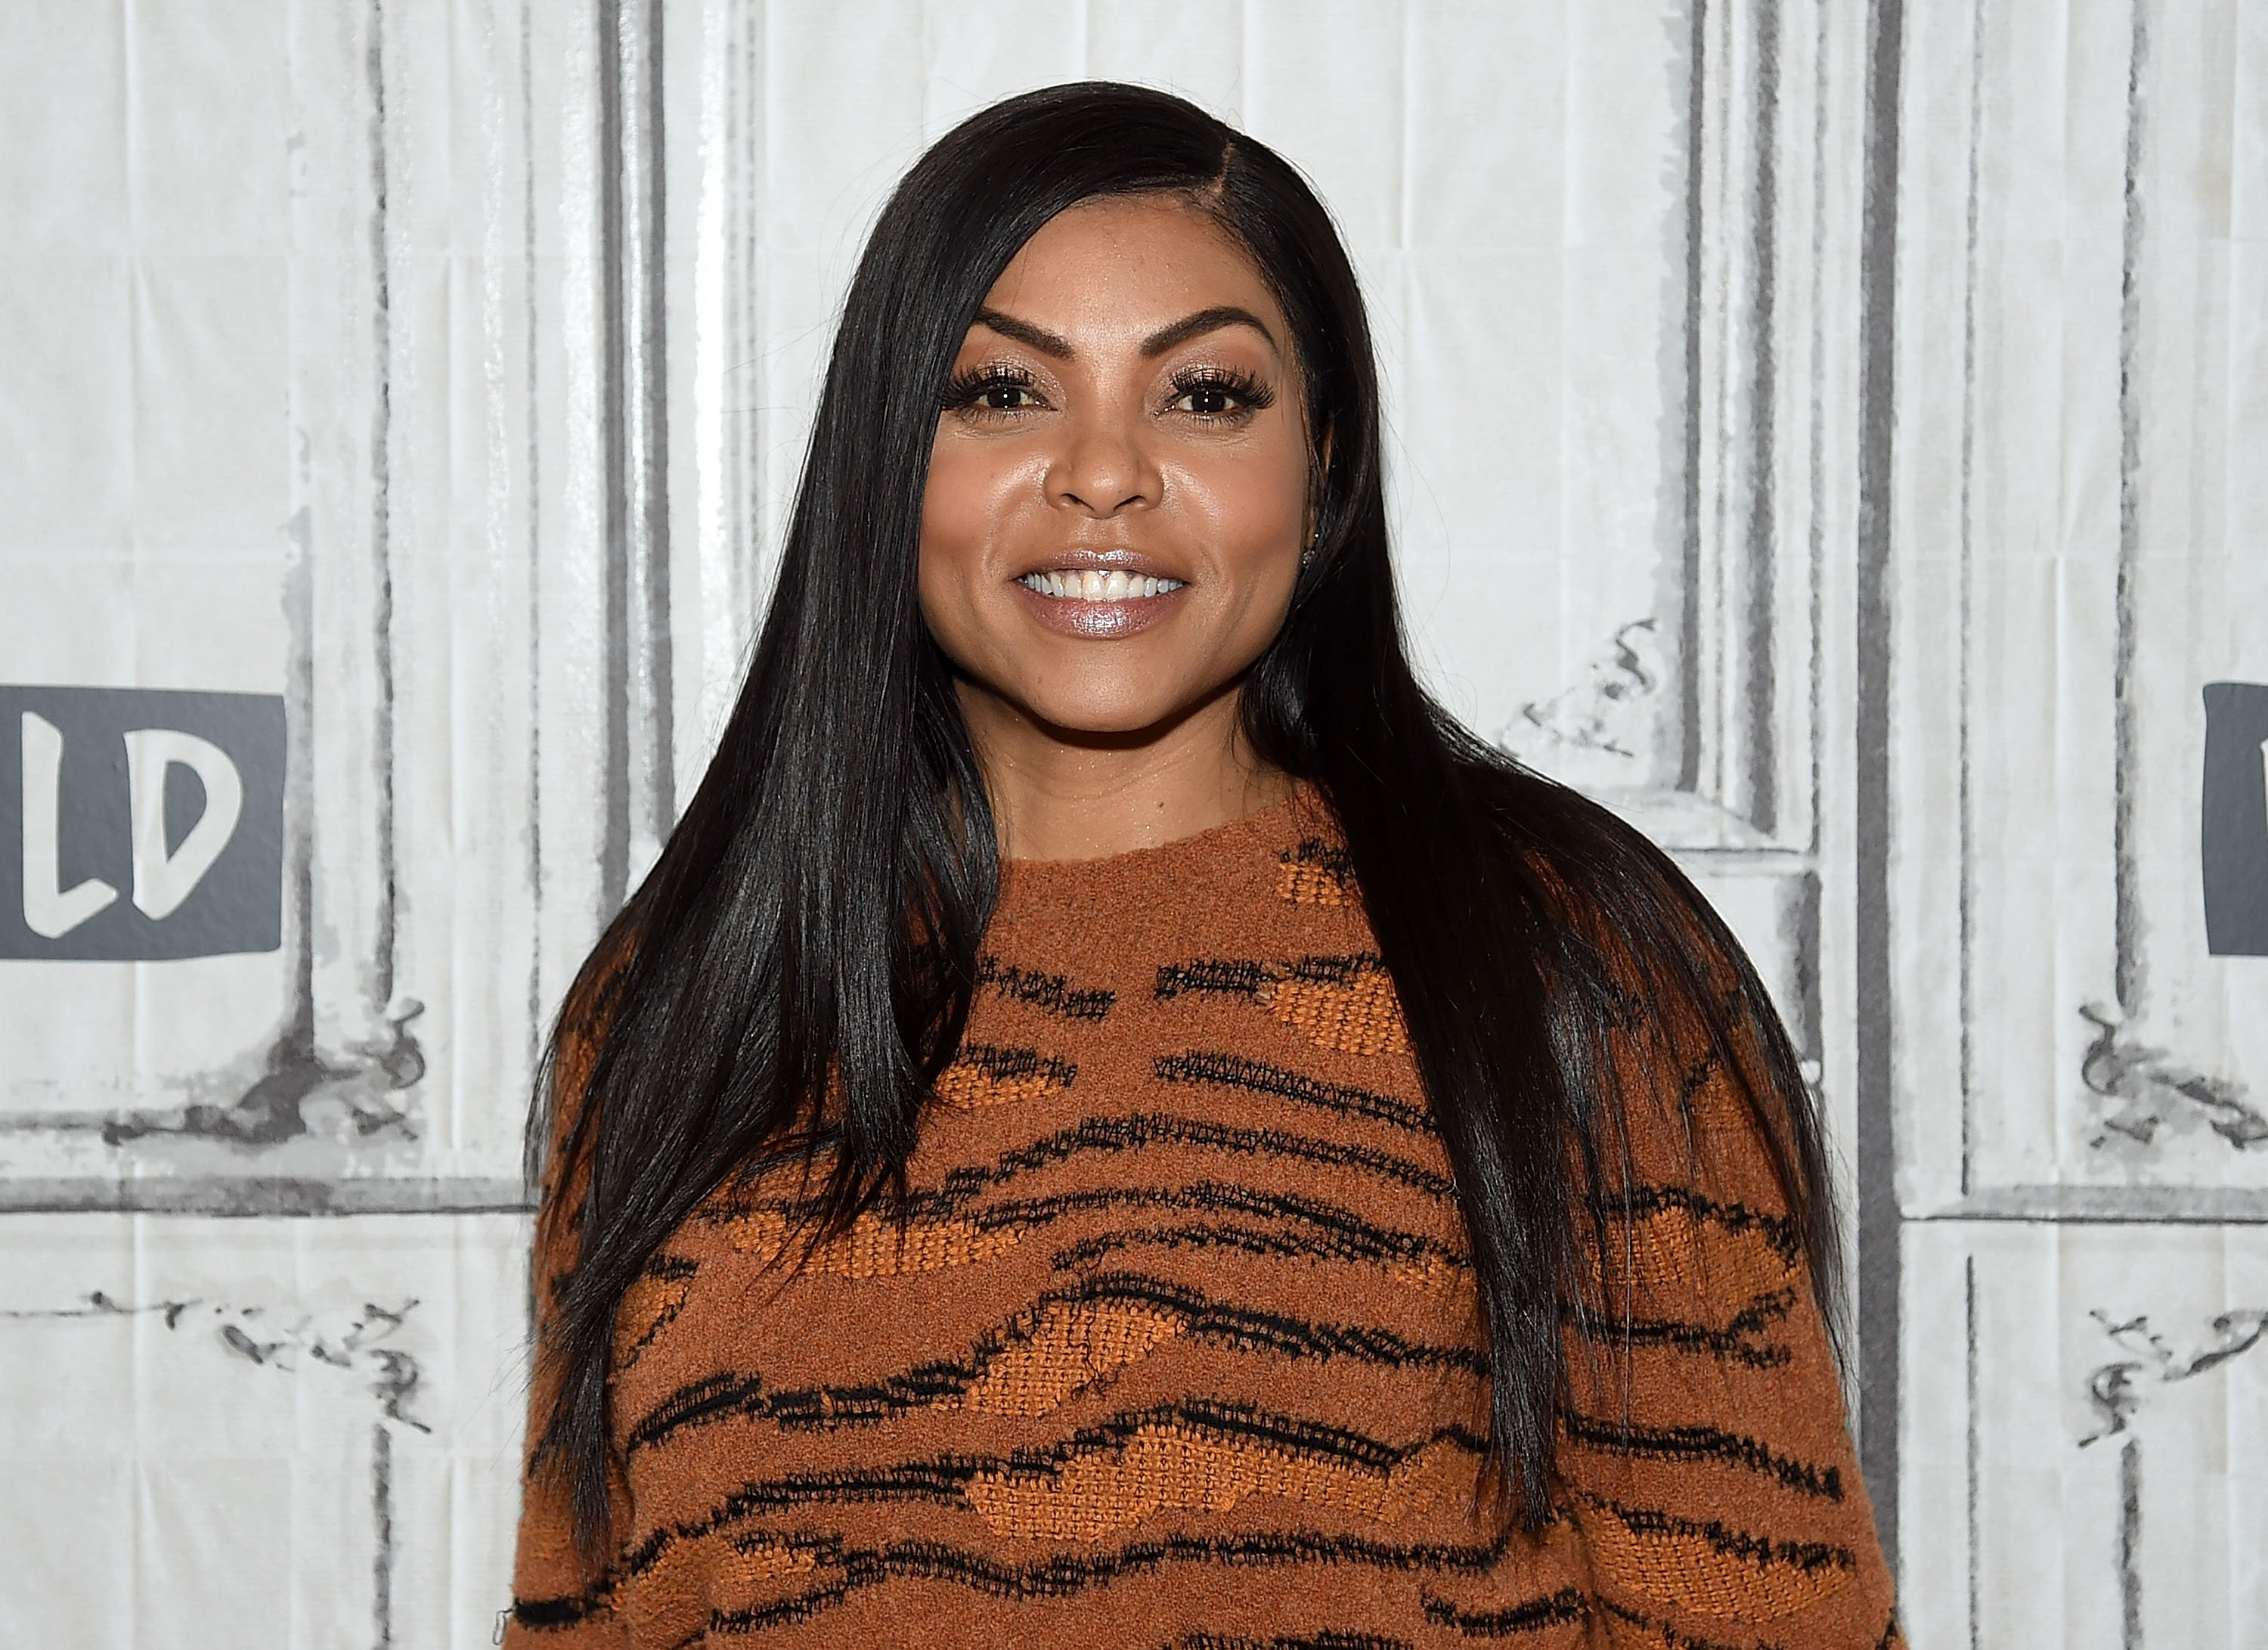 """Taraji P. Henson at Build Studio to discuss """"Acrimony"""" during the Build series on March 26, 2018 in New York City.